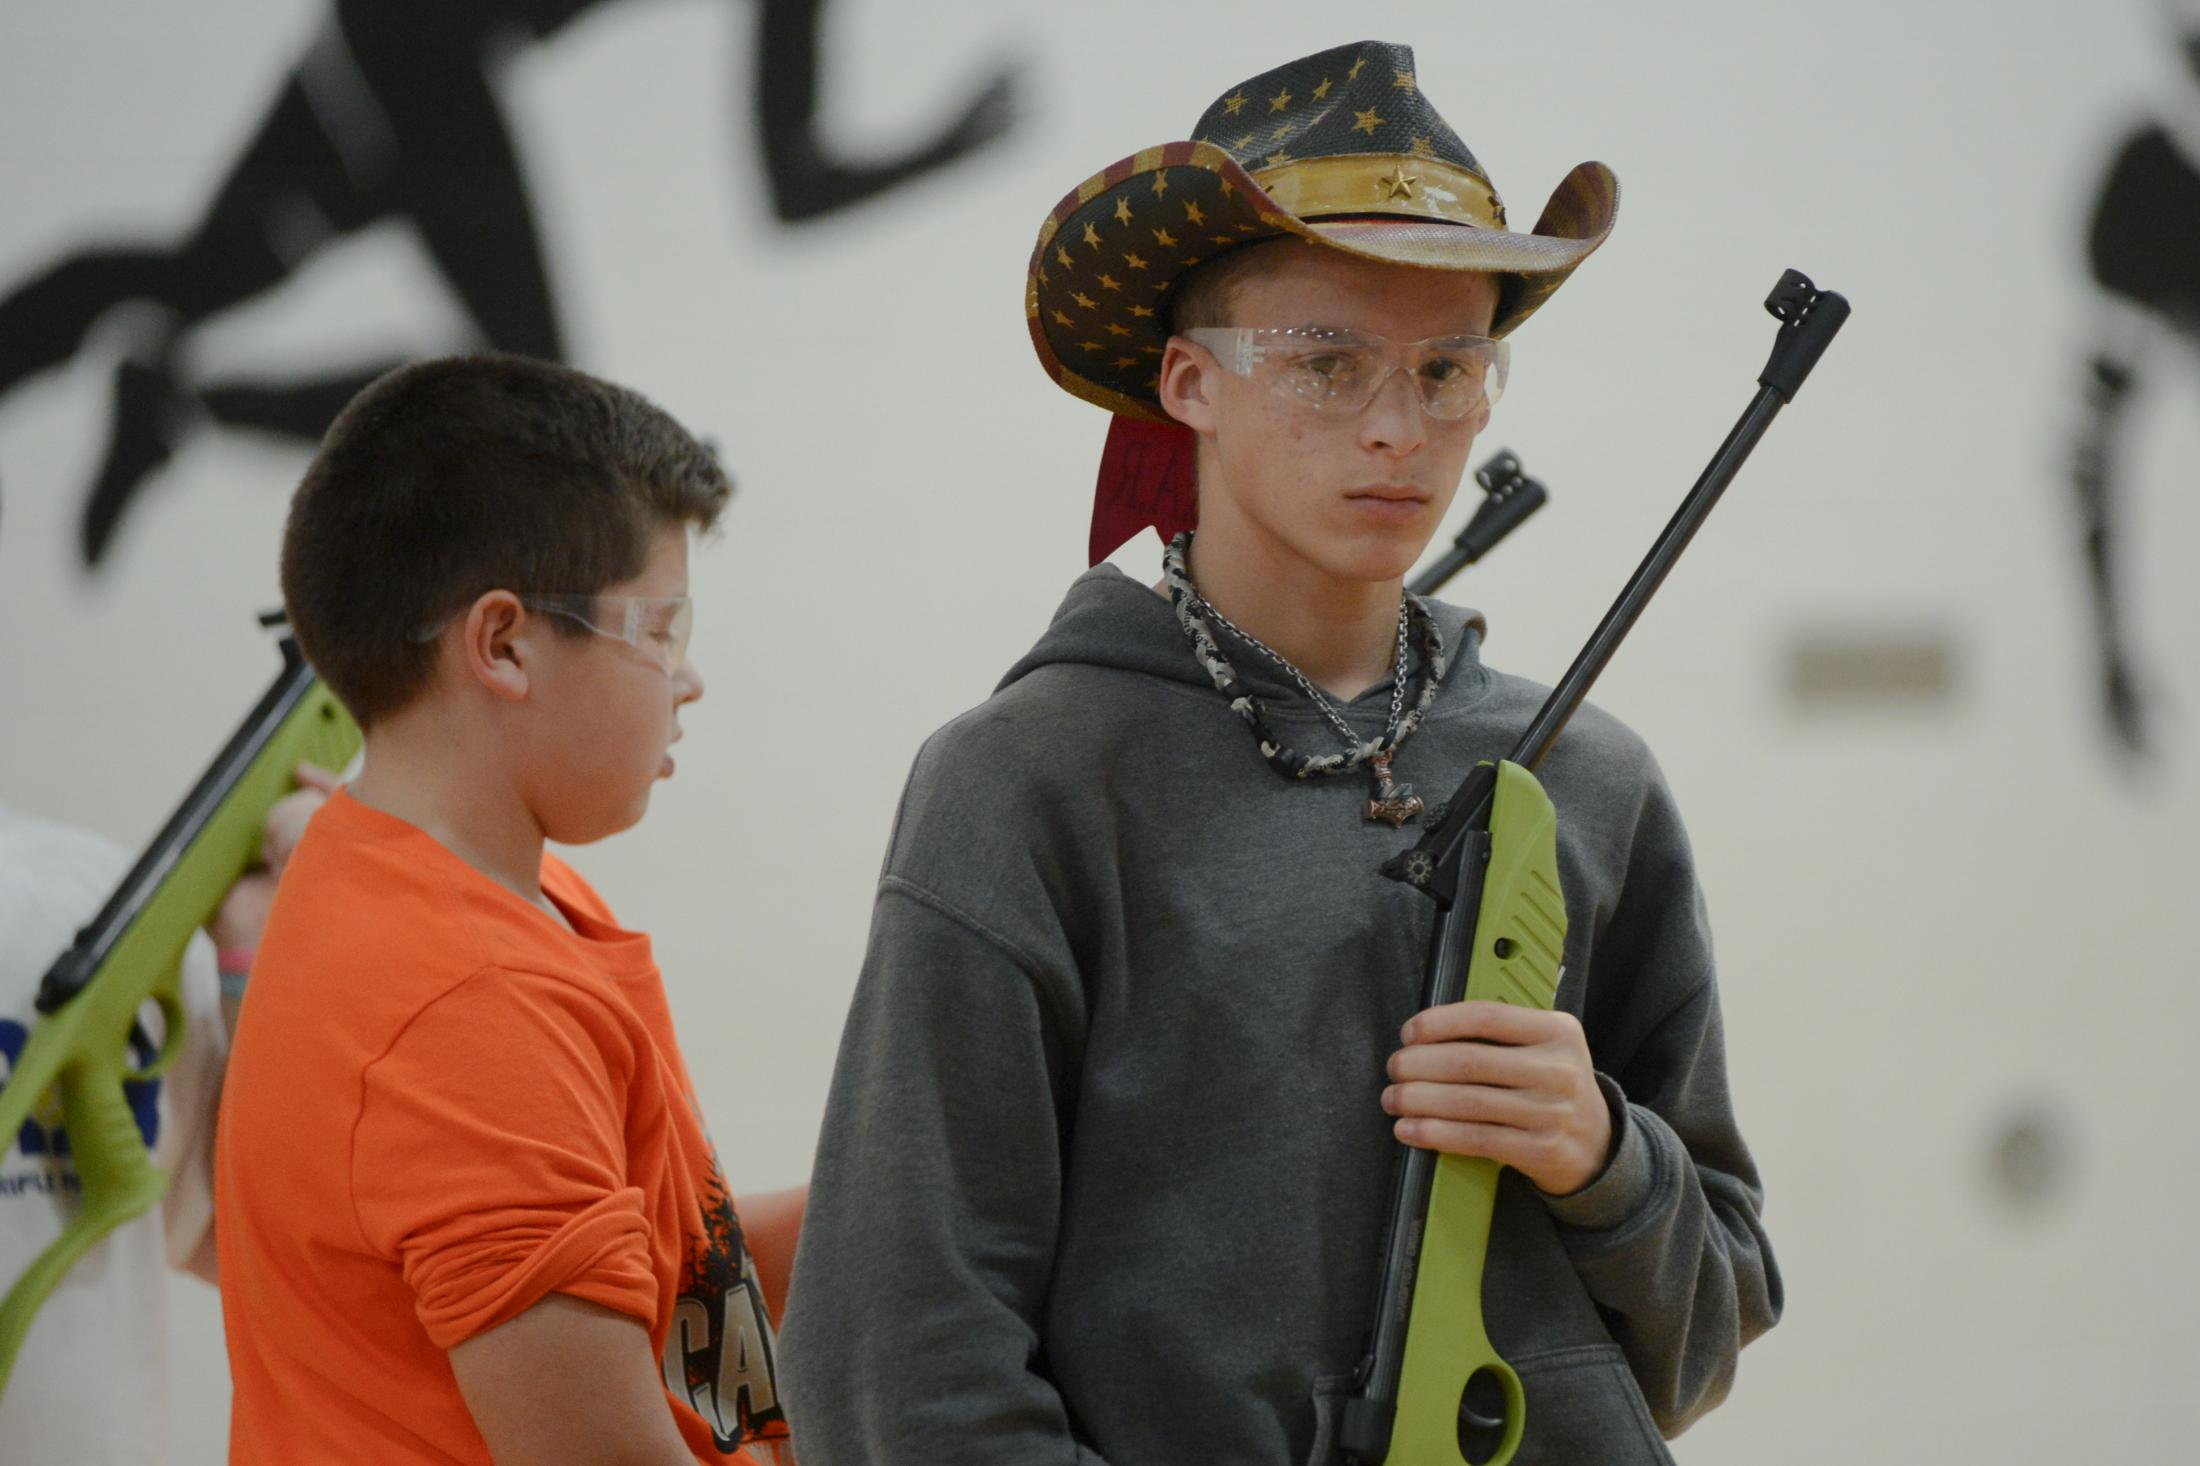 Tristan Record, 15, from Spokane, Missouri stands with his empty air rifle after shooting in a round at Student Air Rifle Program Tournament at Clever High School on November 14, 2019. Tristan took first place in the high school individuals boys category.